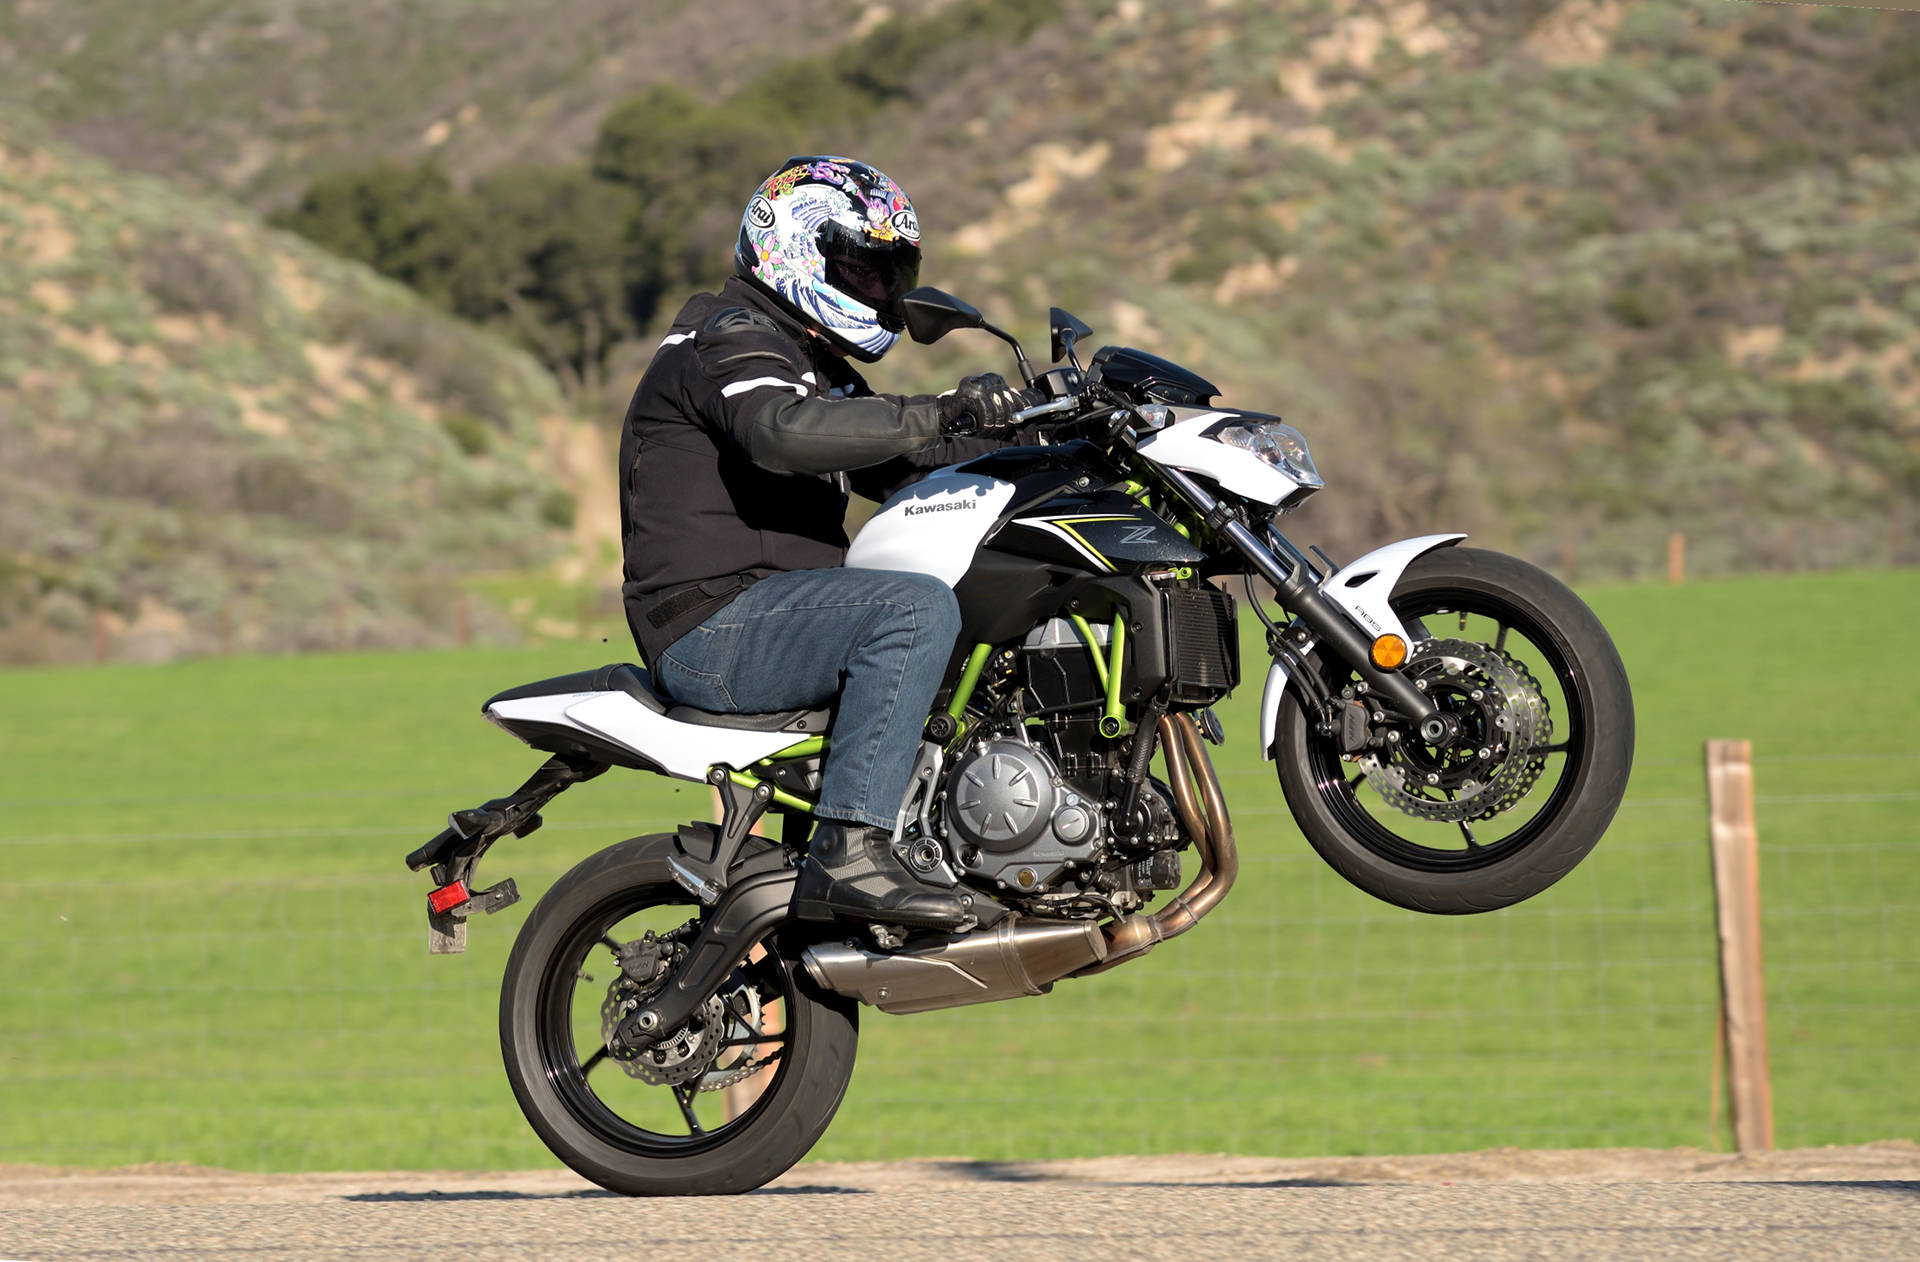 2017 Kawasaki Z650 MD Ride Review Part Two